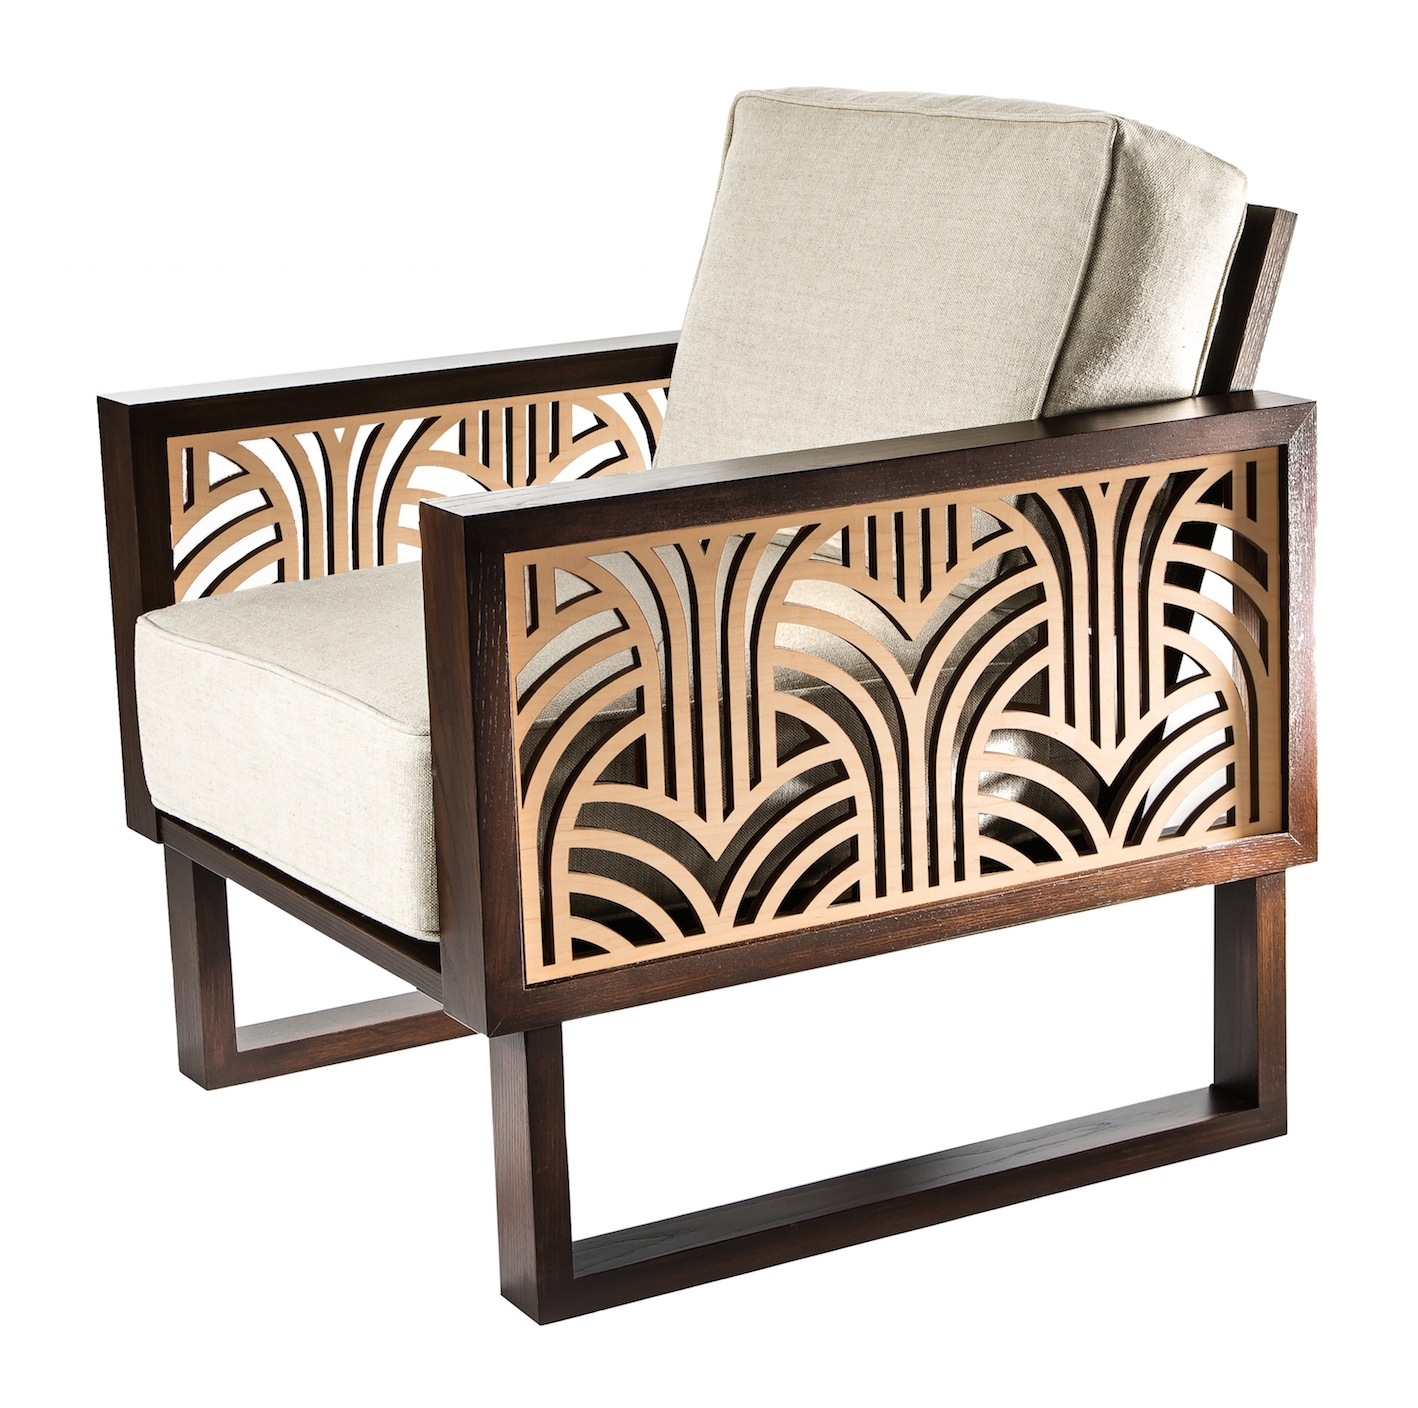 Gallery Of Art Deco Sofas View 14 Of 20 Photos